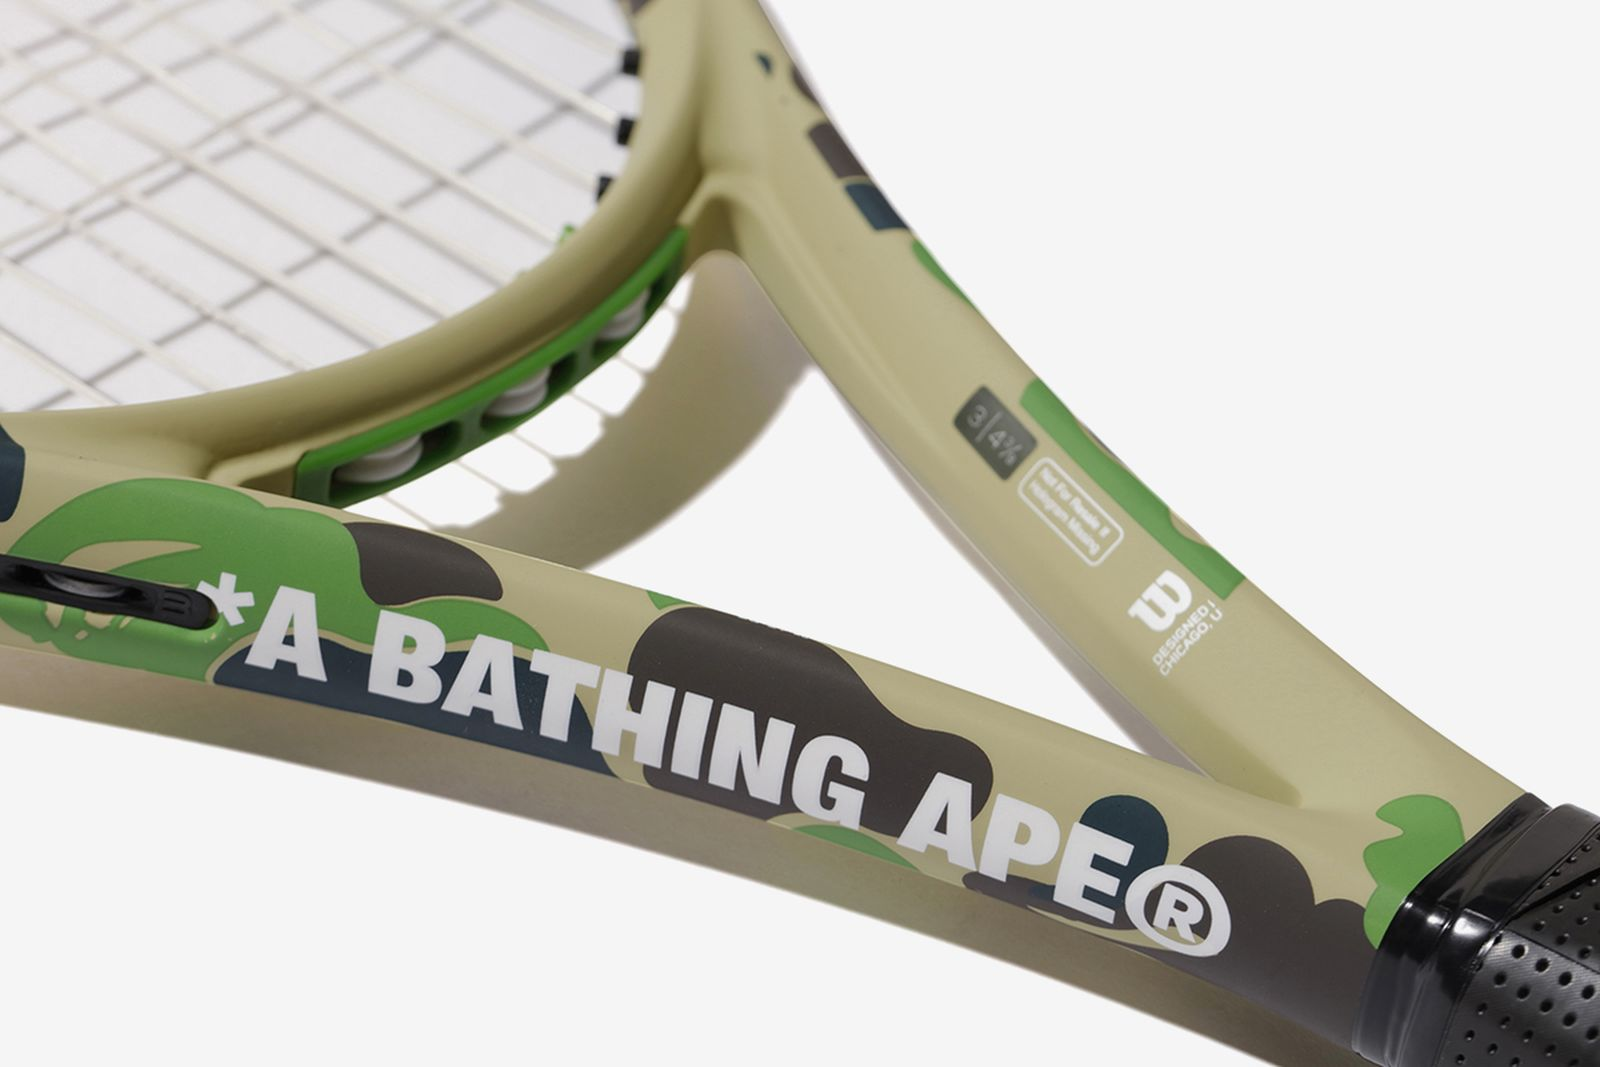 bape wilson tennis collection A Bathing Ape